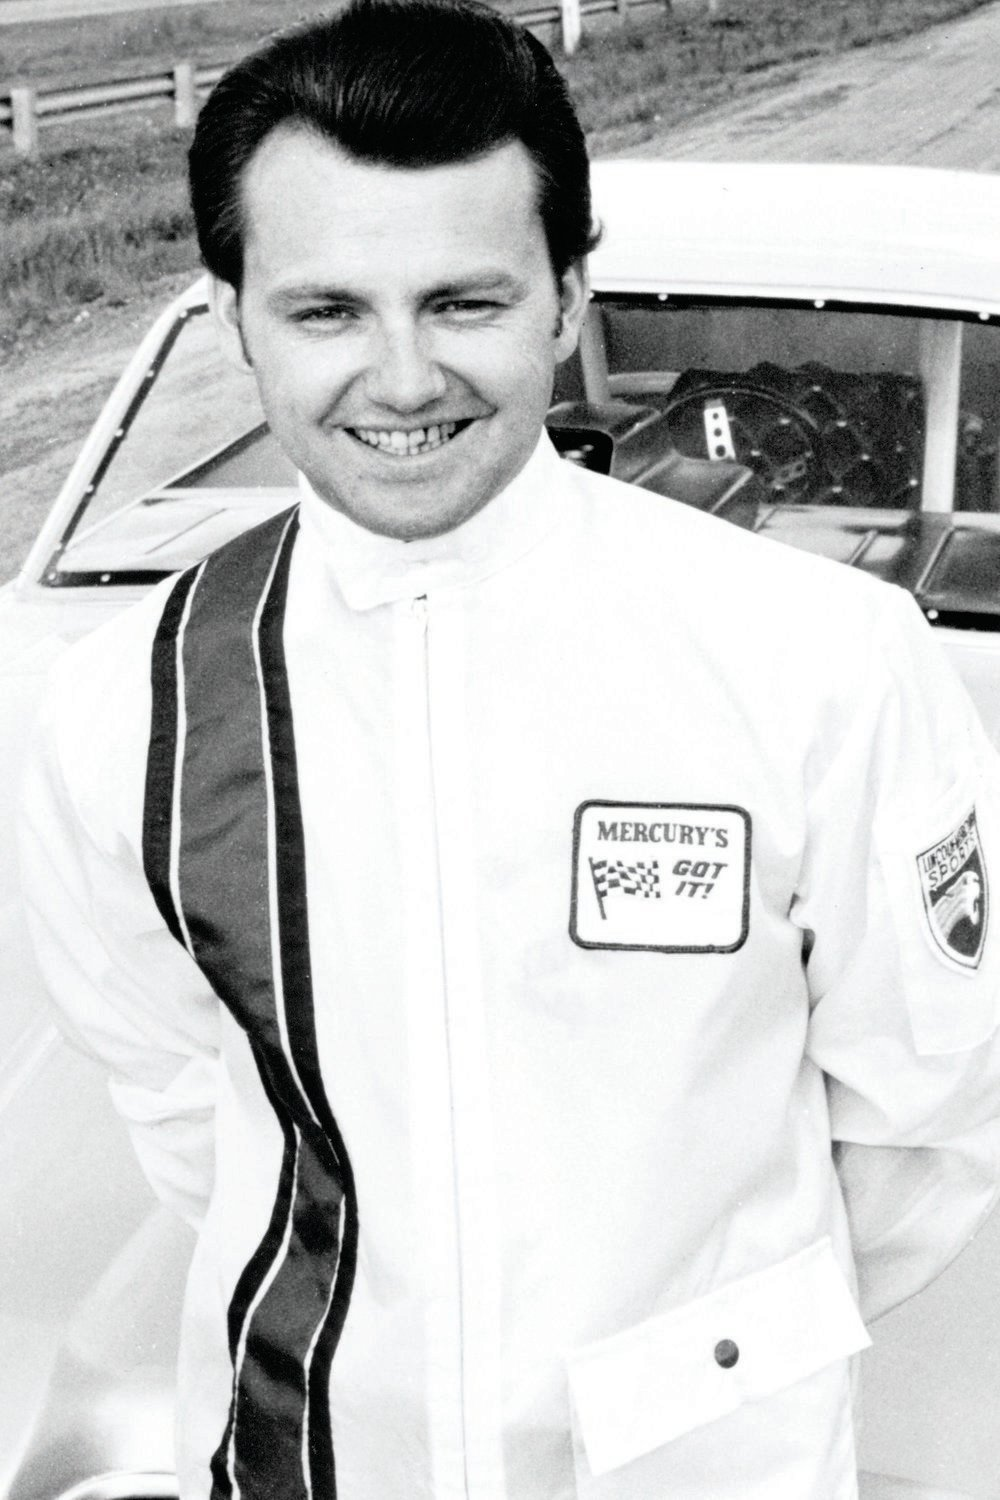 Fast Eddie Schartman from Cleveland, Ohio, was a favorite at Lincoln-Mercury Division because he was willing to do the auto show circuit, the dealer show circuit, and anything else the factory asked of him in between racing his Comet A/FX cars, and Comet and Cougar Funny Cars between 1964 and 1972, when the factory pulled the plug on racing. He's the last surviving Comet F/C pilot and, today, owns several dealerships in the Cleveland metro area.